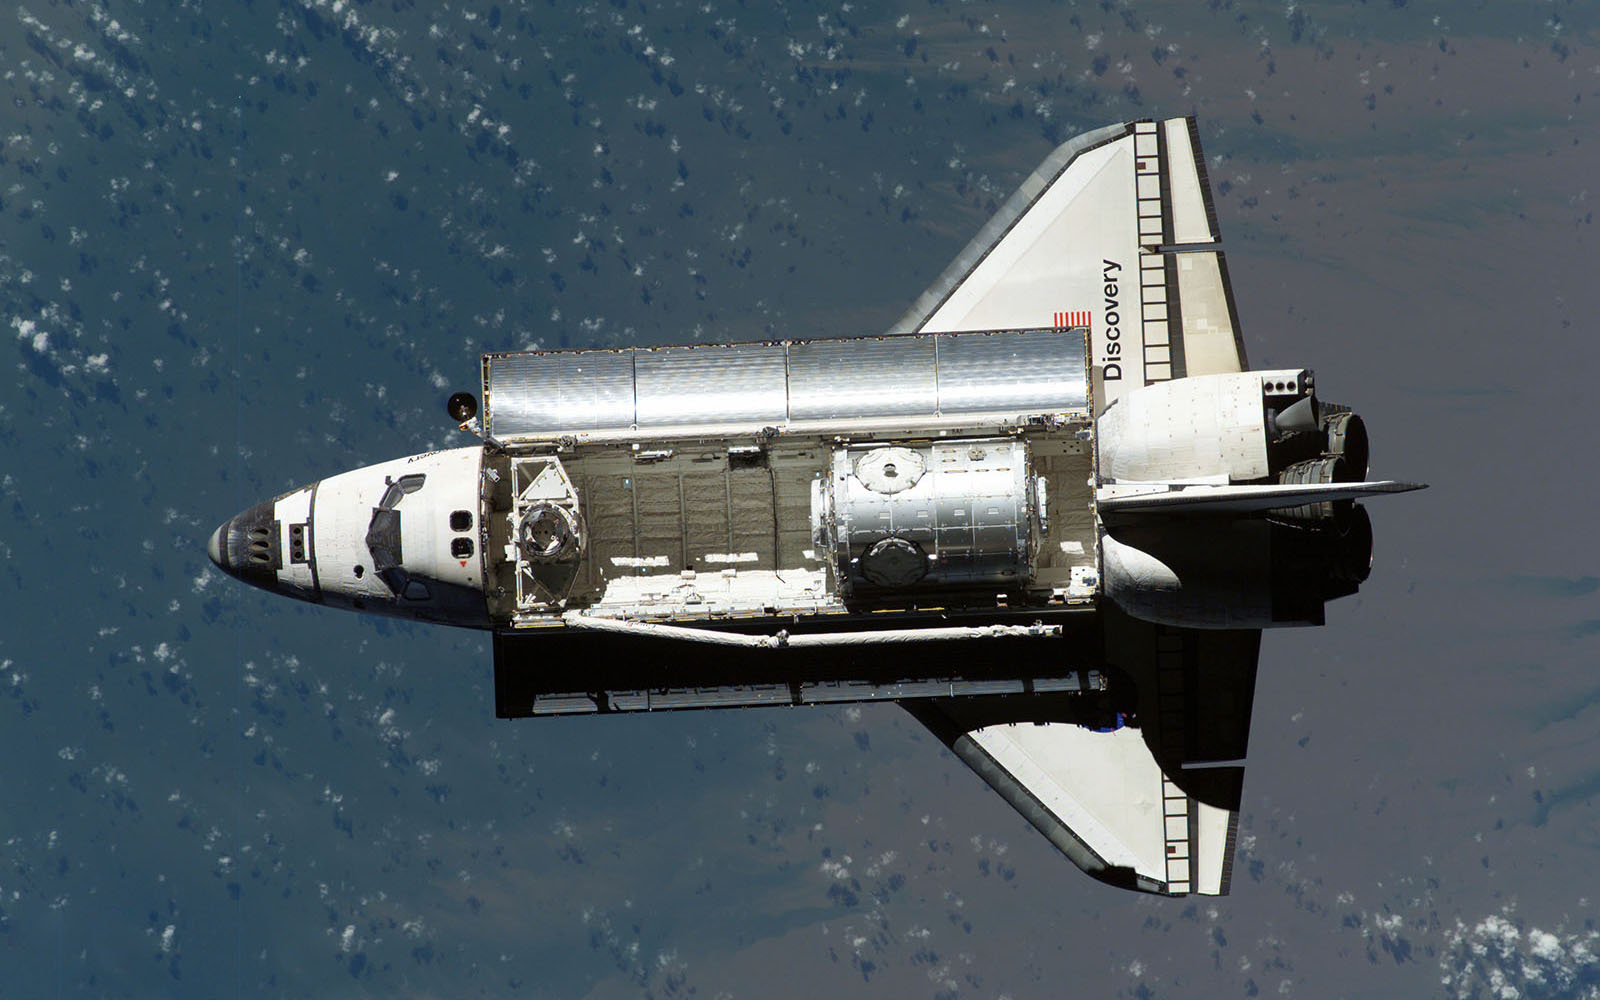 Space Shuttle - Bing images